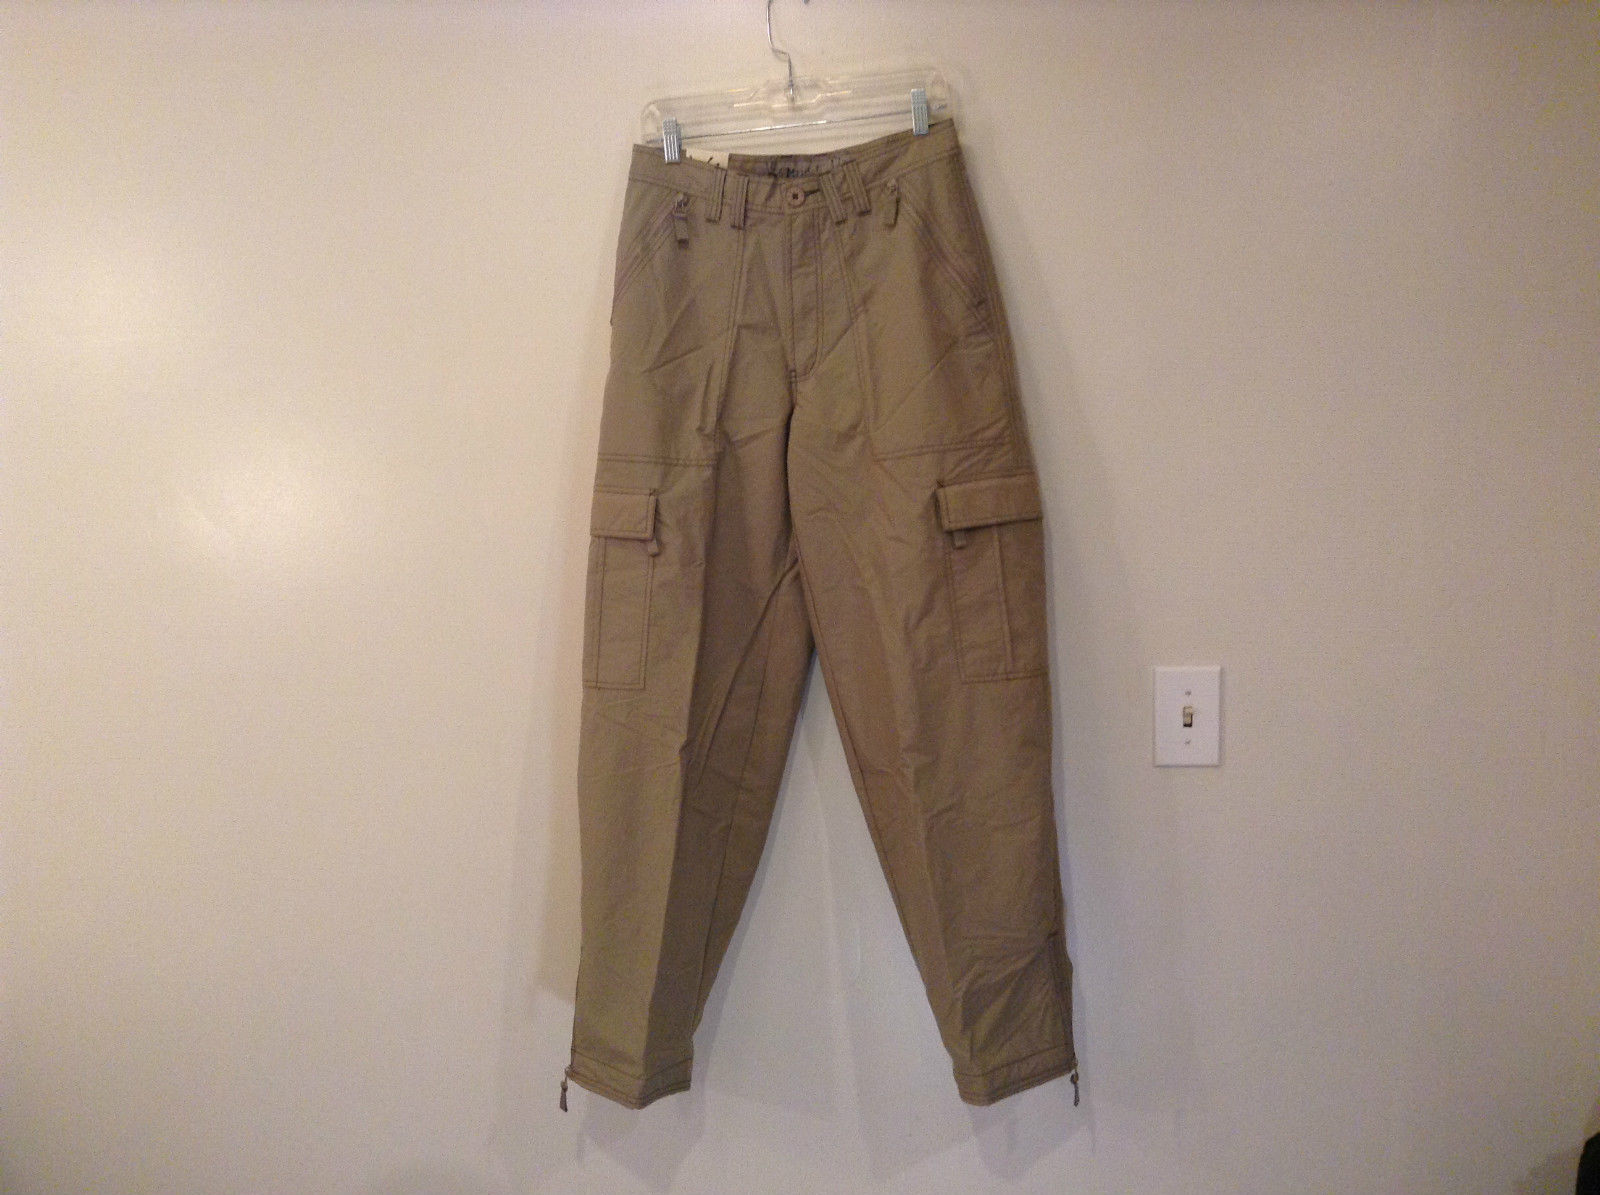 Khaki Sport Pants Mudd NEW WITH TAGS Fully Lined size w  Leg Pockets